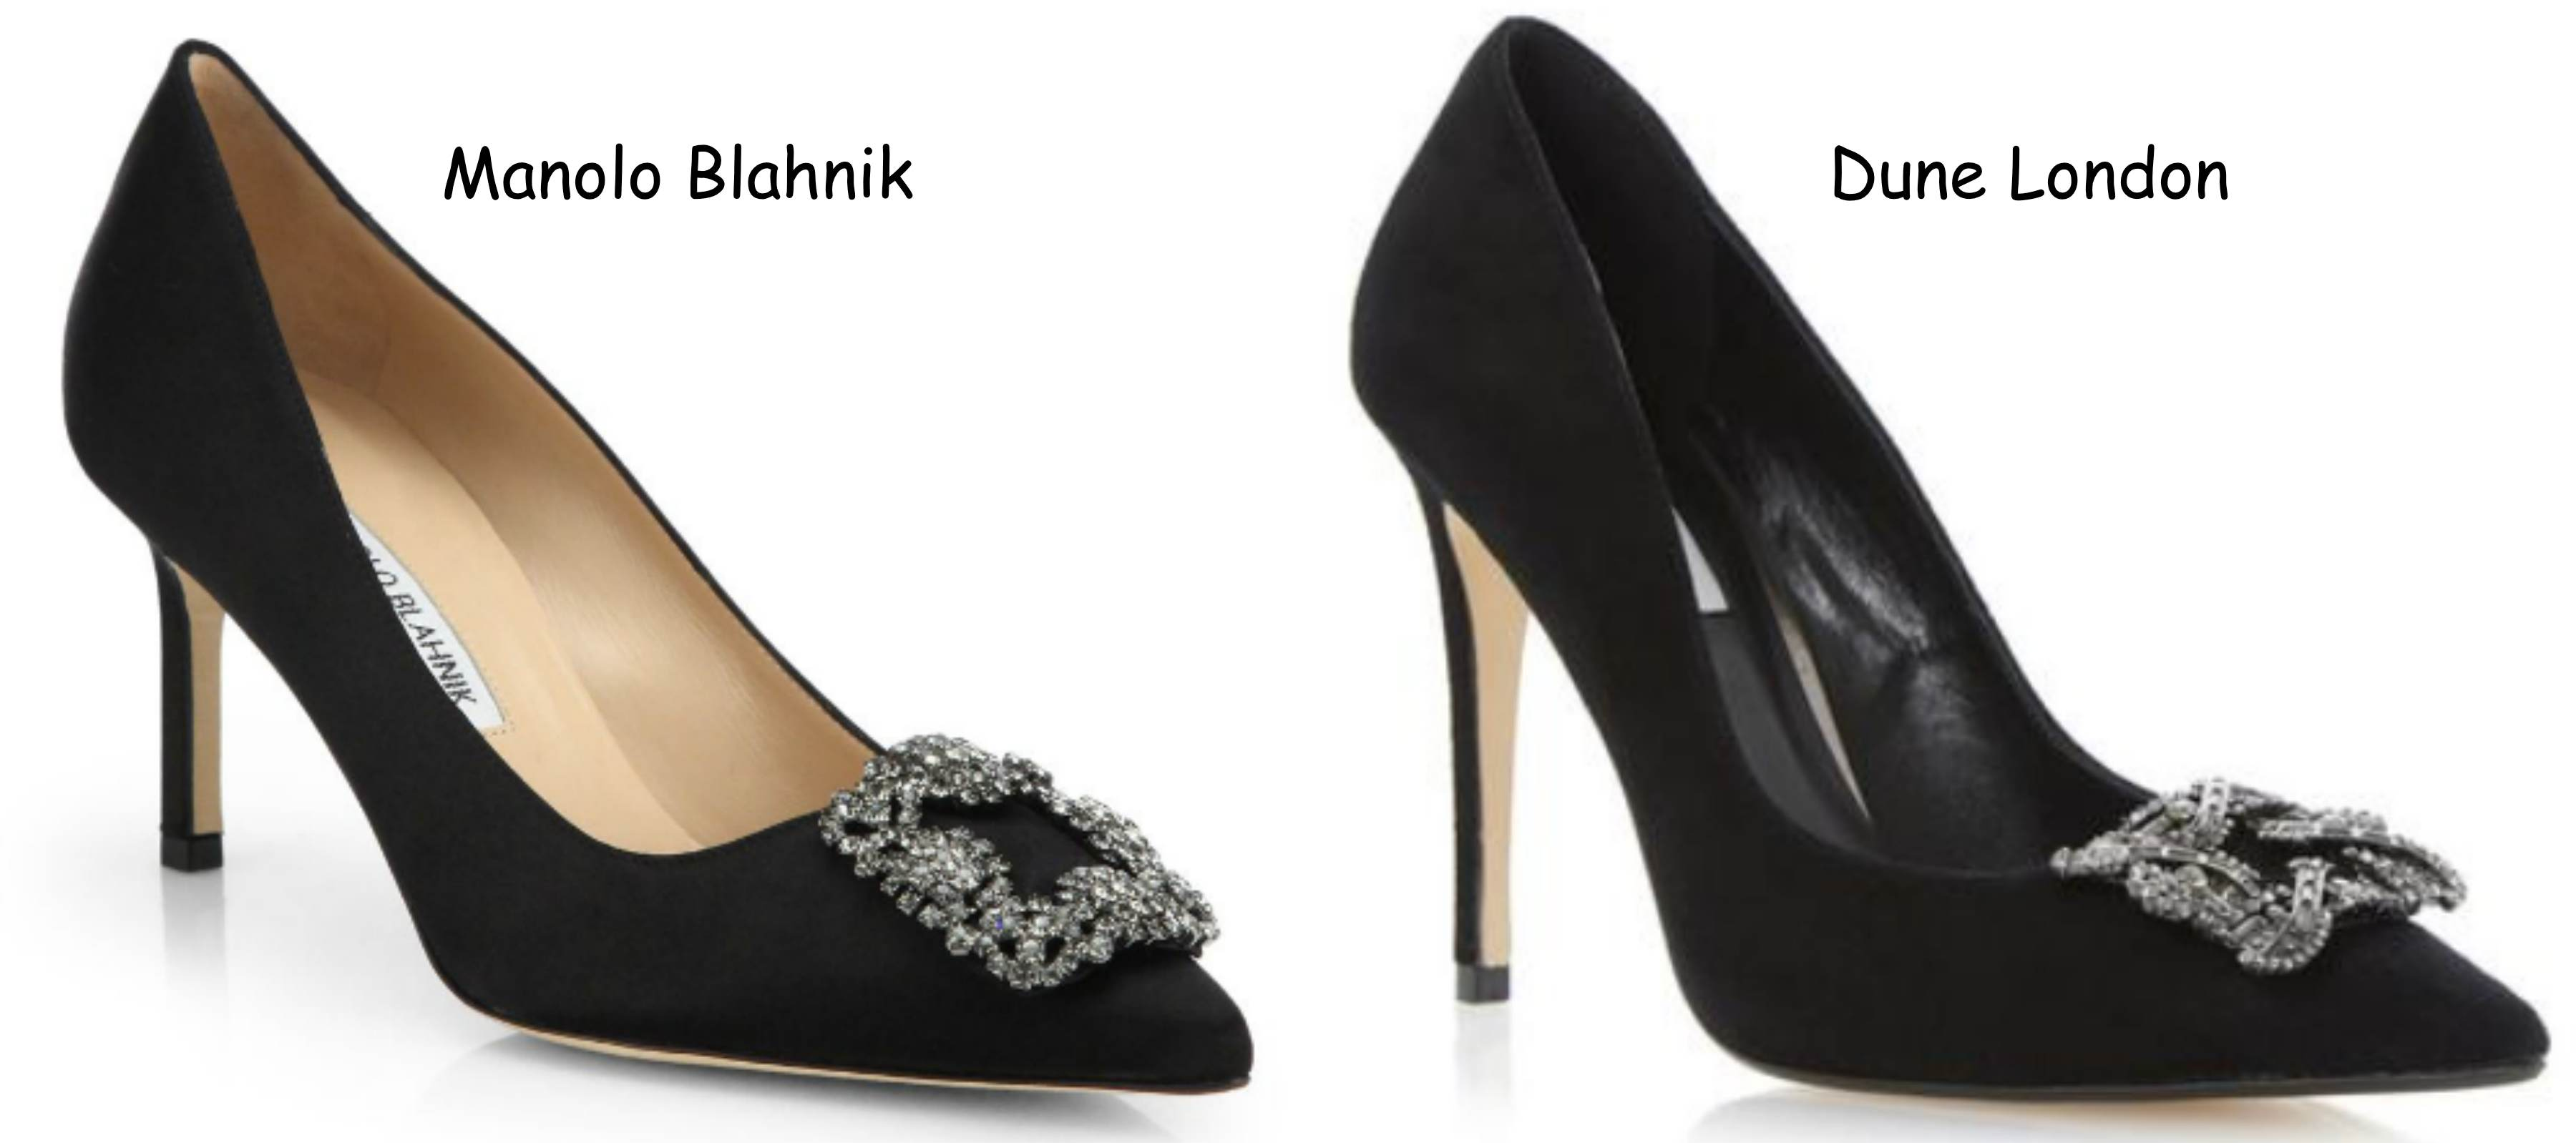 Crave or save manolo blahnik vs dune london dancing for Shoes by manolo blahnik